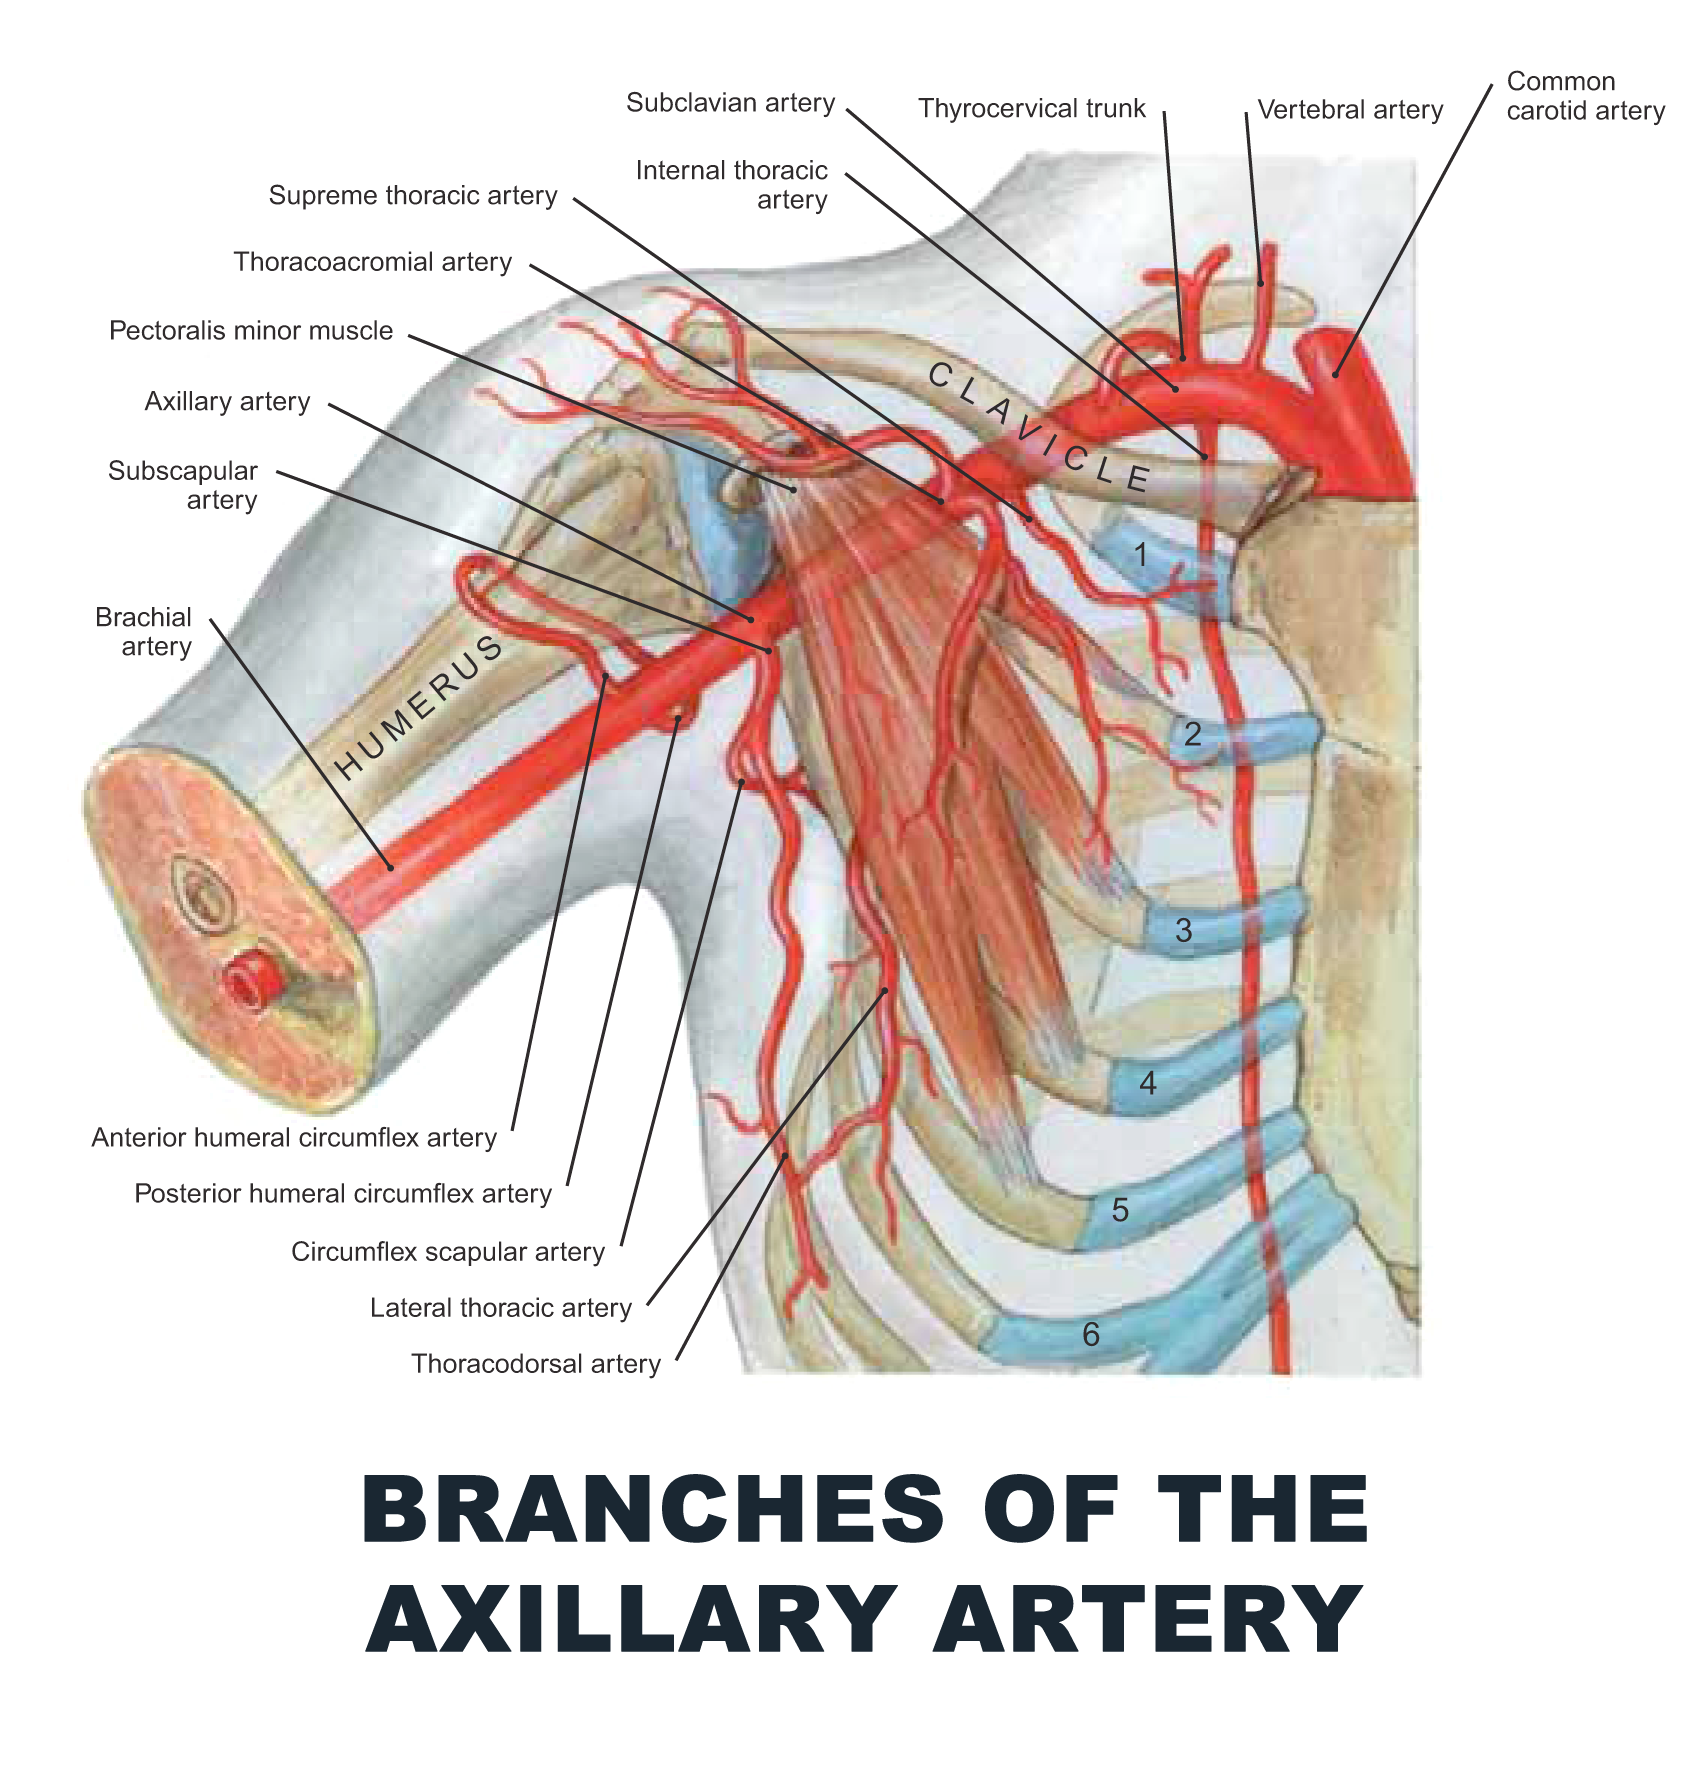 Branches Of The Axillary Artery Anatomy Images Illustrations